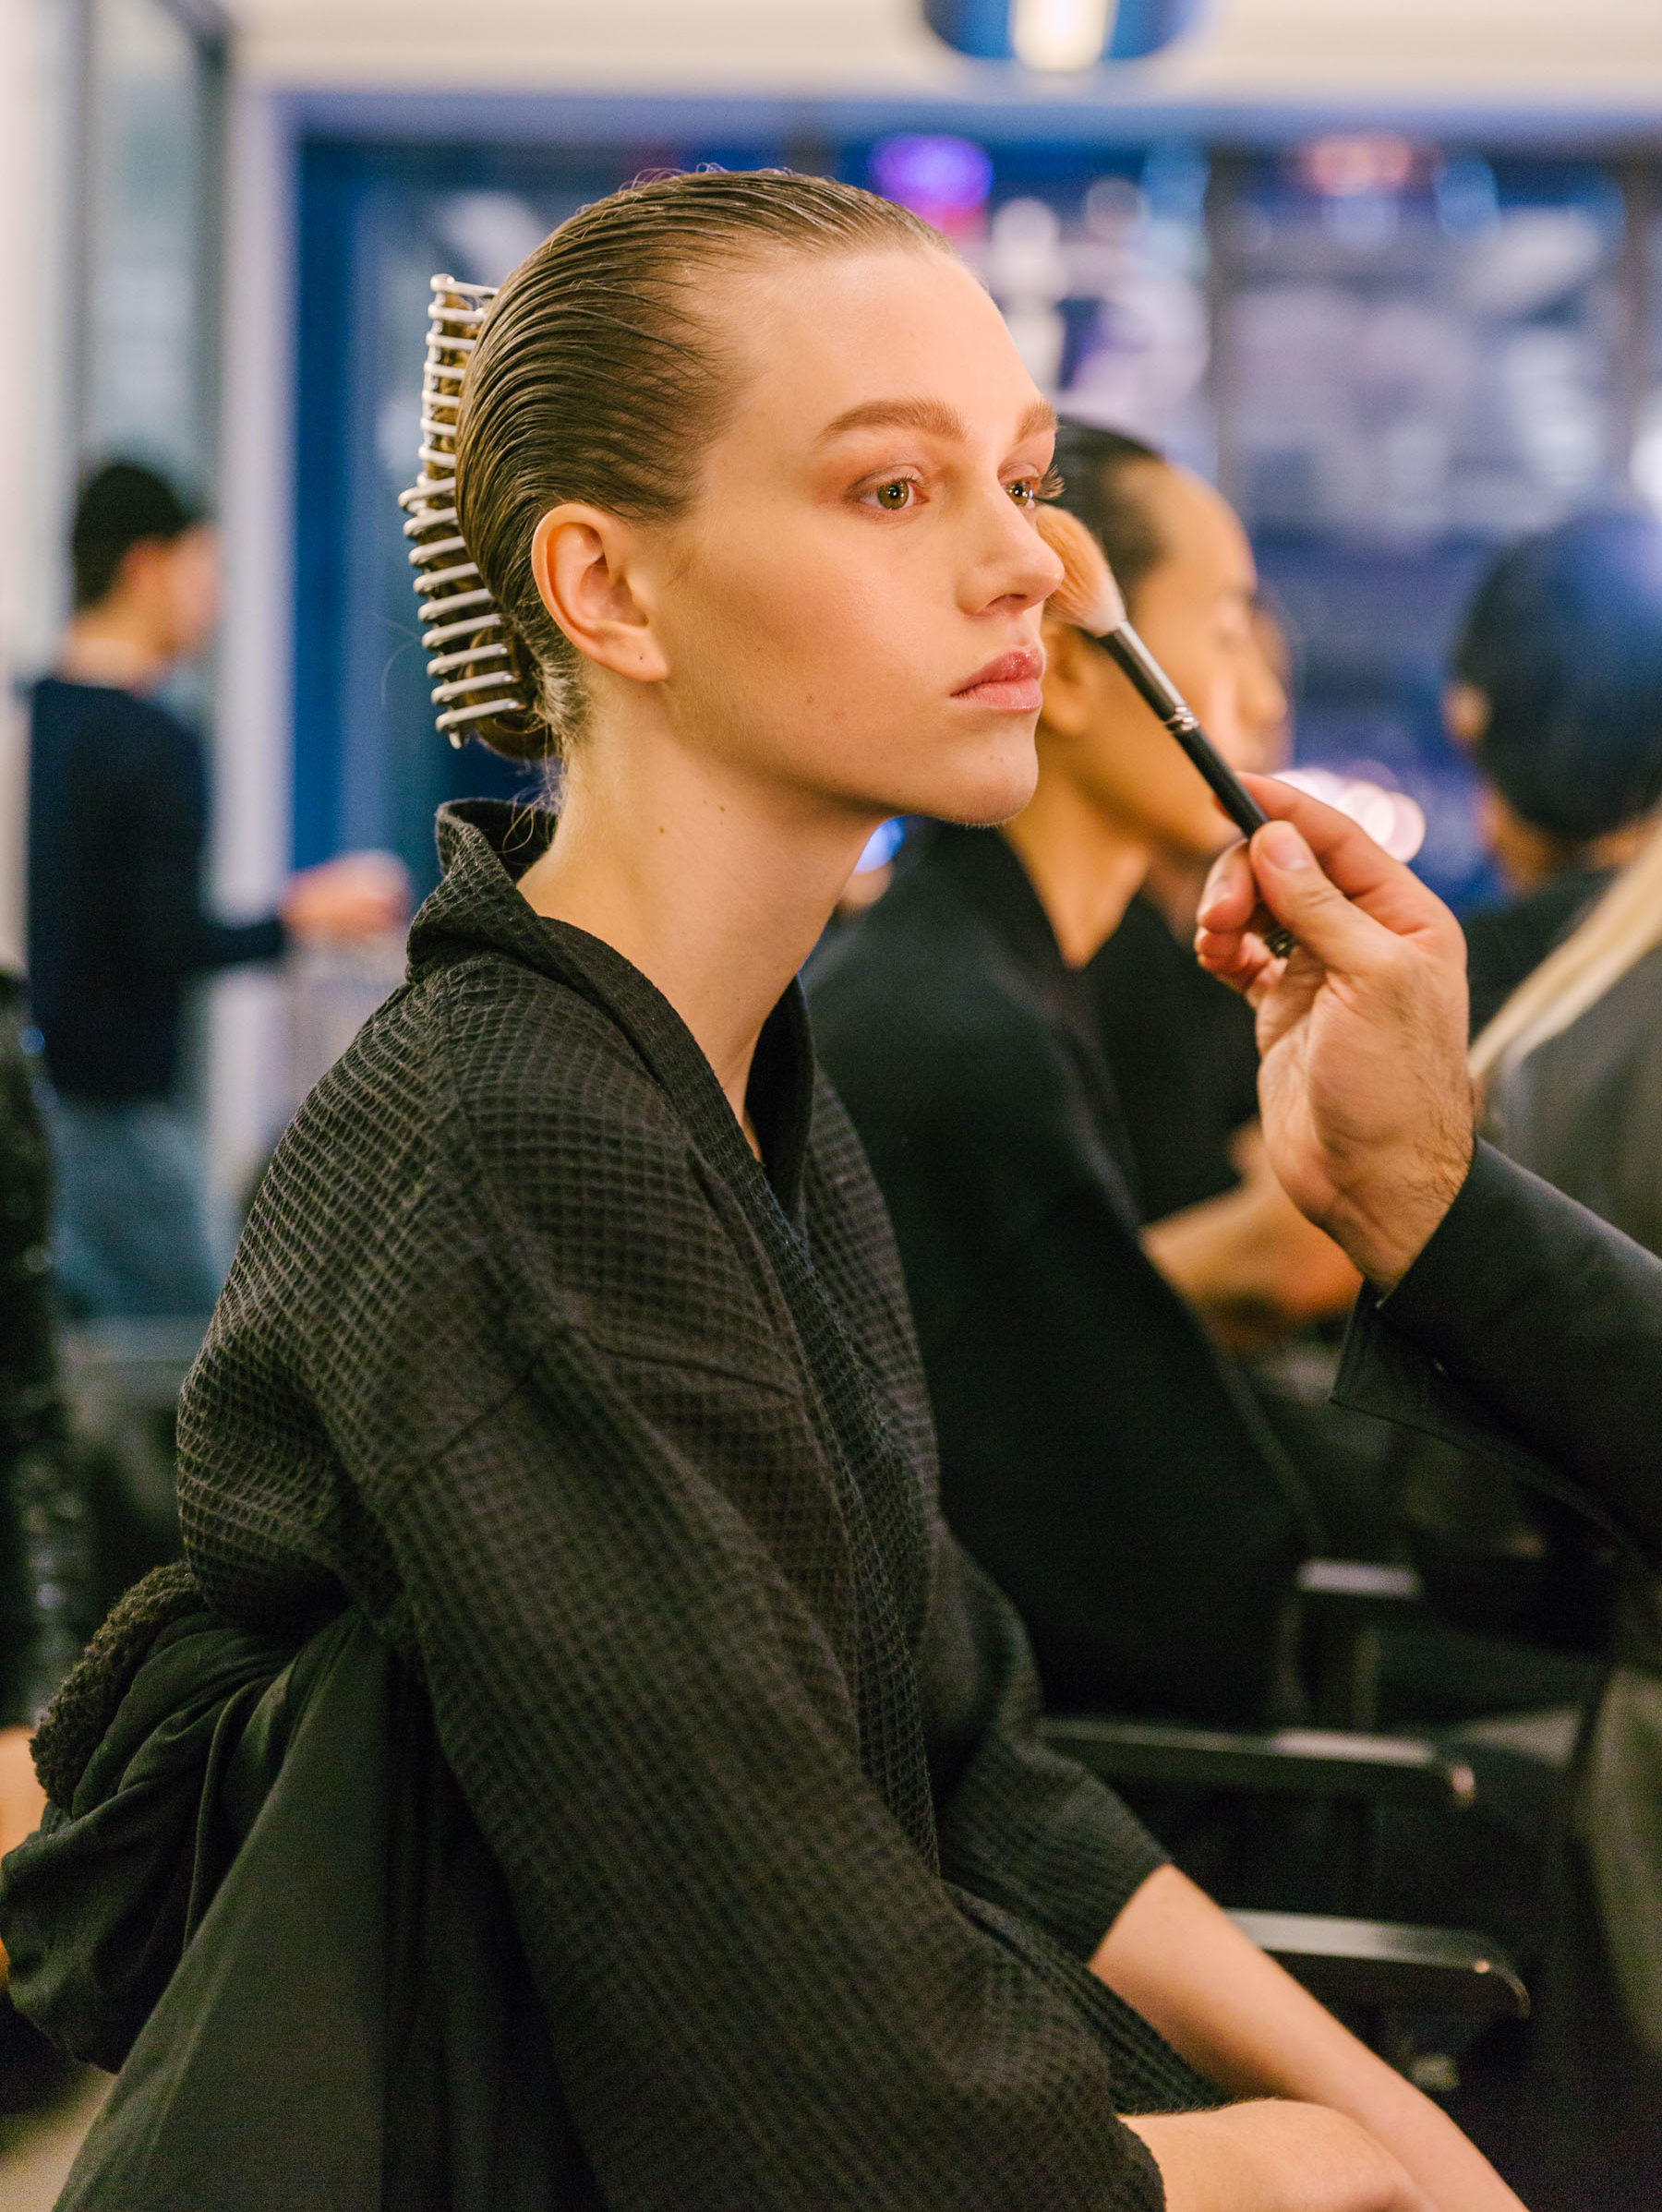 5 MAJOR BEAUTY TRENDS FROM NYFW BACKSTAGE // Notjessfashion.com // fall 2018 beauty trends, fall 2018 nyfw backstage, fall 2018 runway beauty